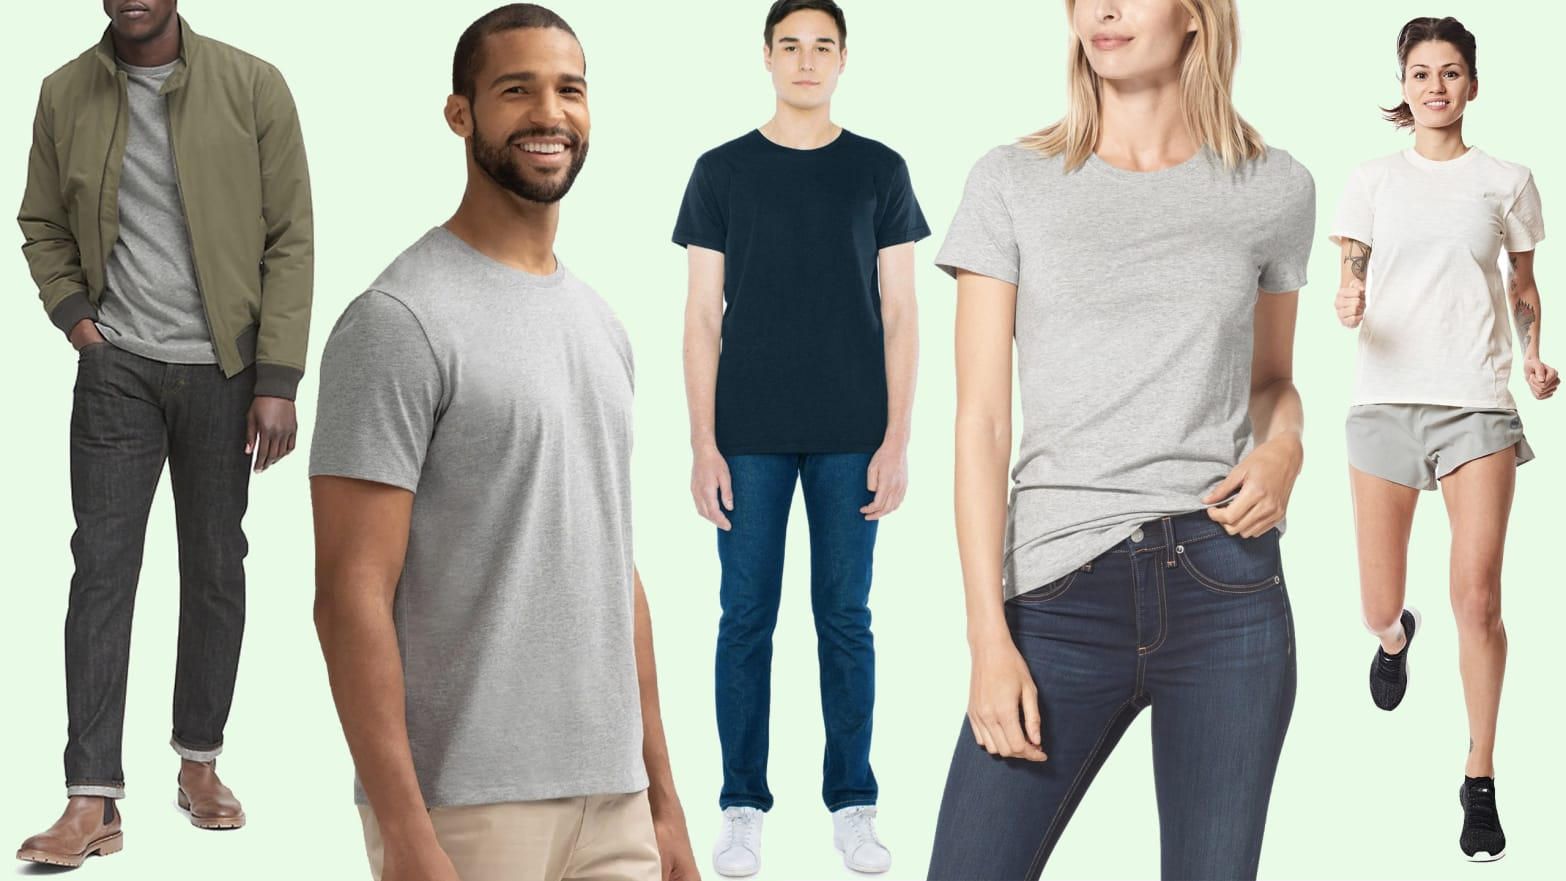 Pima Vs Supima What Type Of Fabric Makes The Best Cotton T Shirt For Your Style